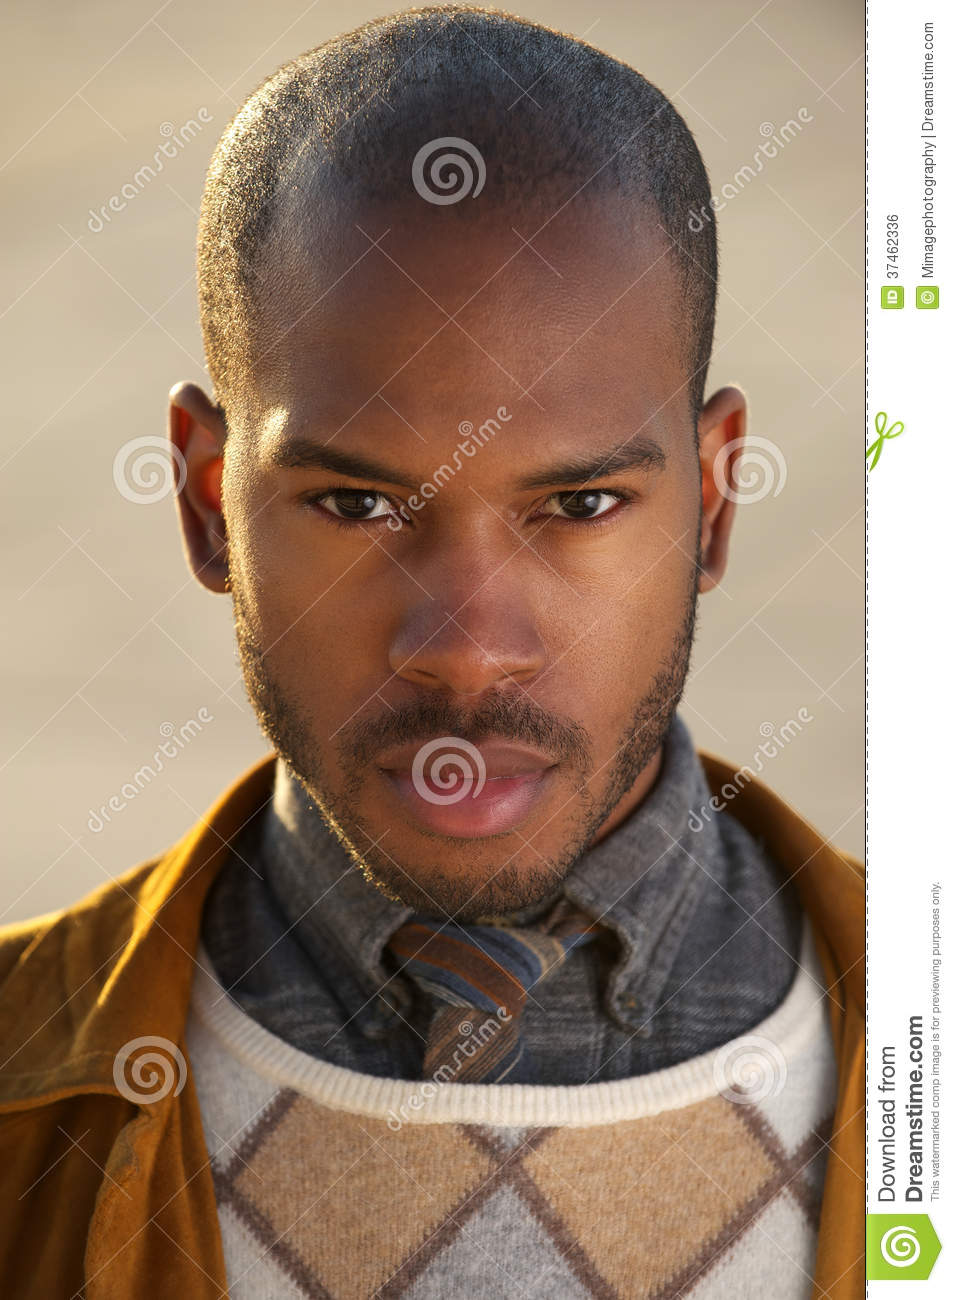 Handsome Black Male Fashion Model Royalty Free Stock Image